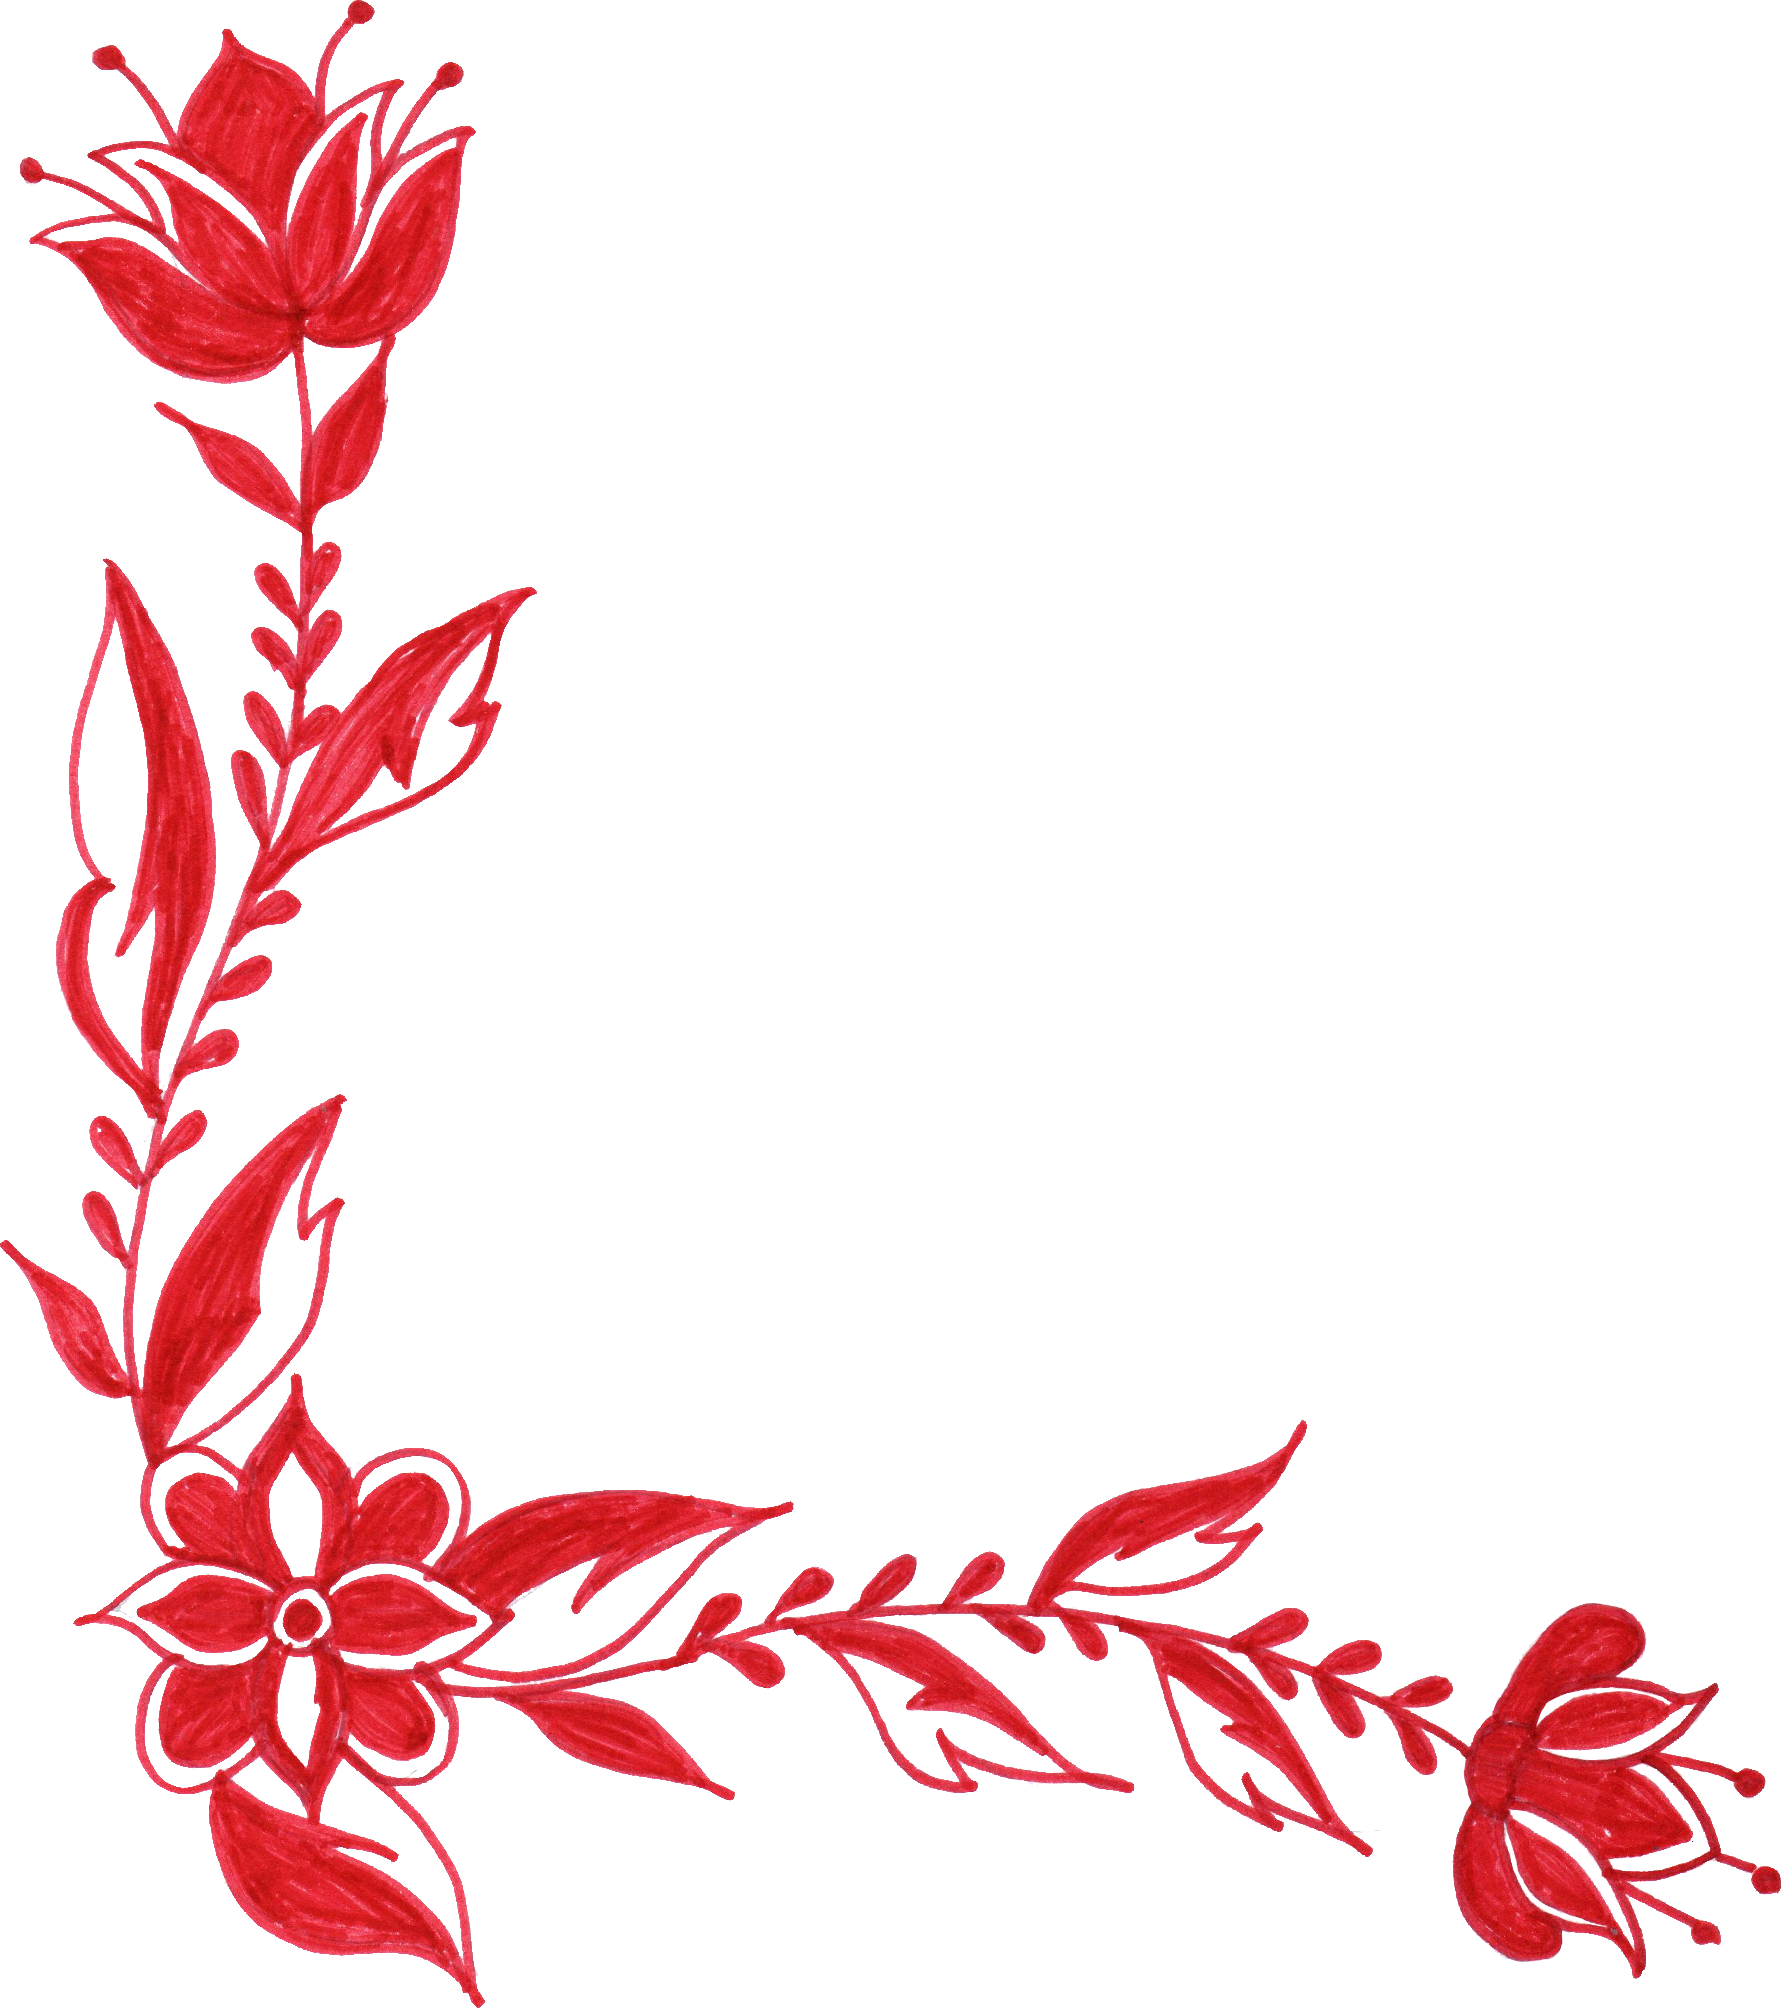 6 Red Flower Corner Ornament (PNG Transparent).